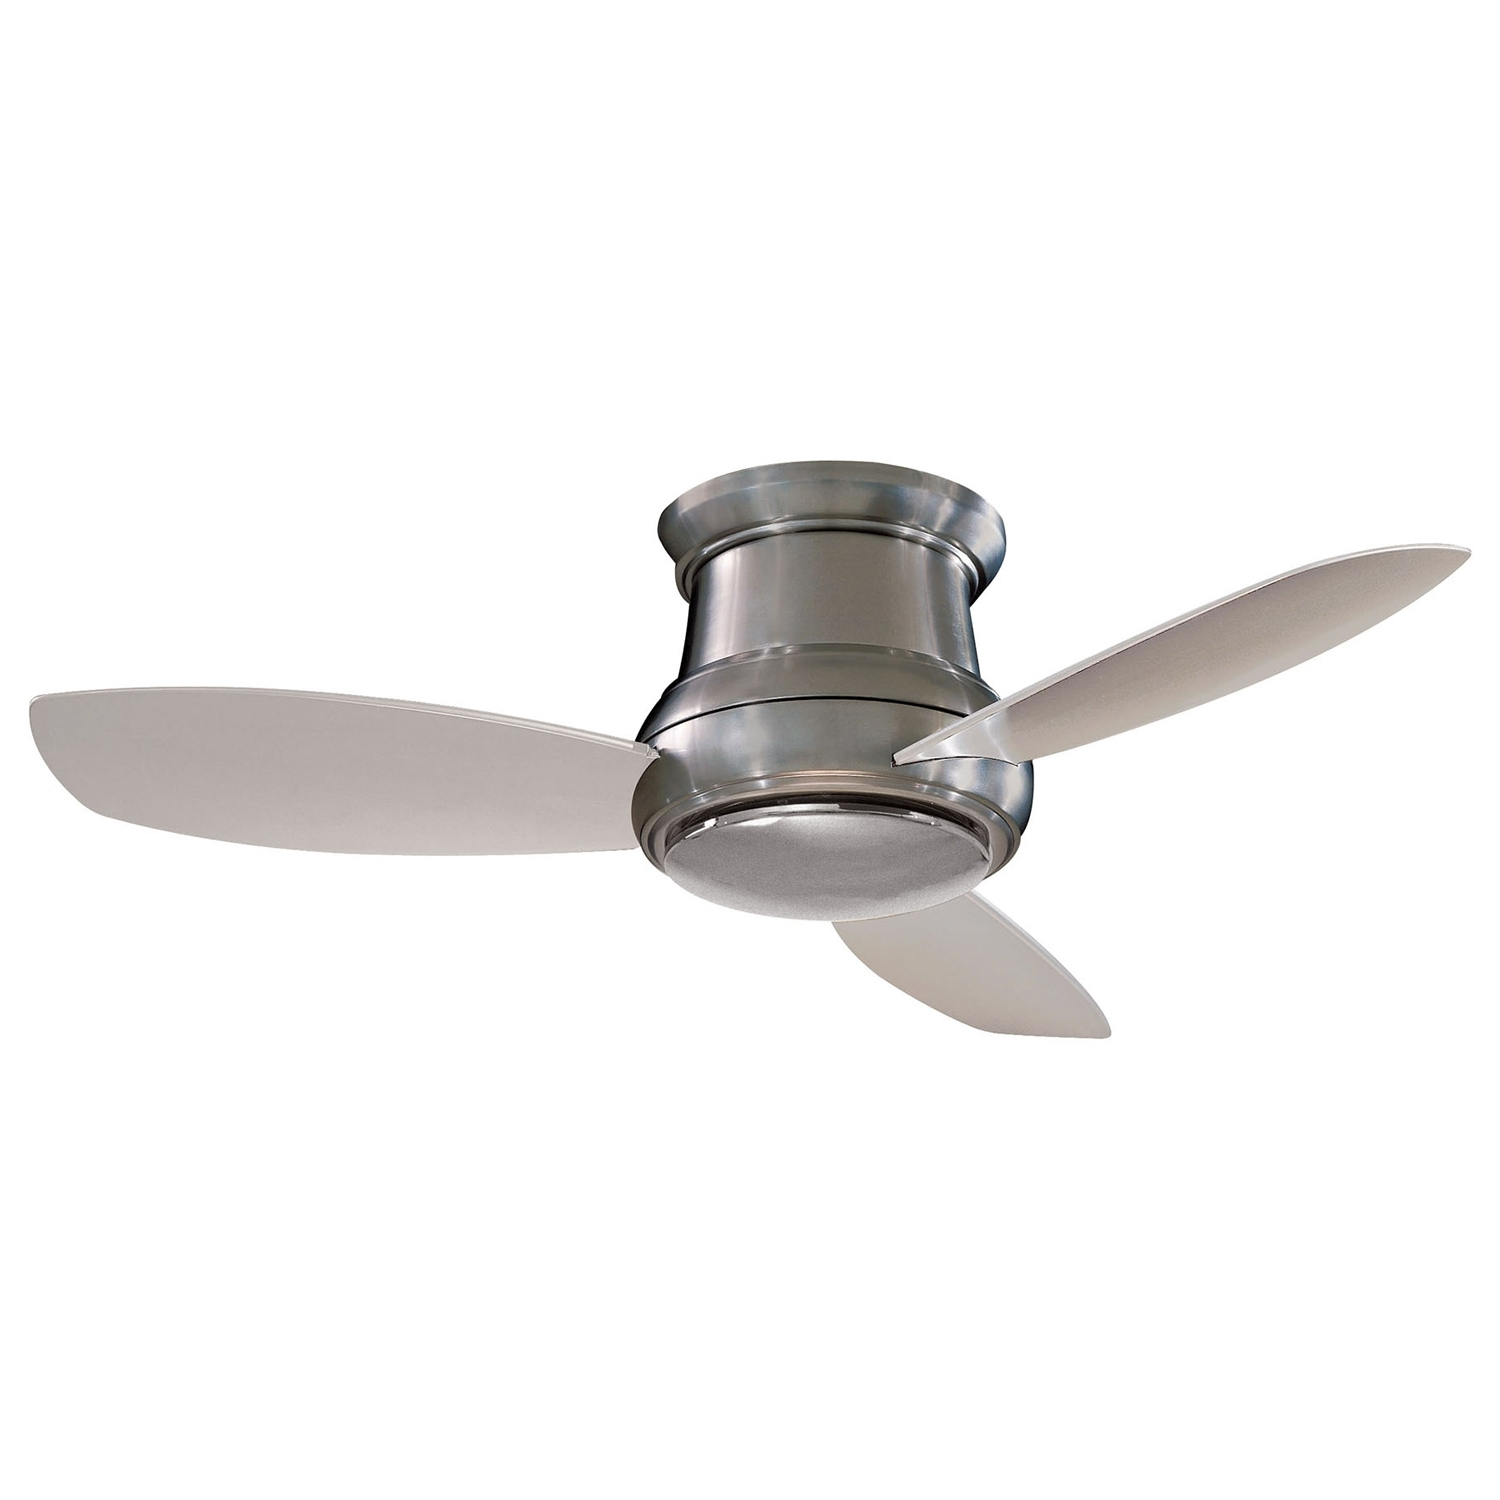 Well Known 36 Inch Outdoor Ceiling Fans With Lights With Ceiling Fan: Remarkable 36 Outdoor Ceiling Fan For Home 36 Inch Fans (View 18 of 20)